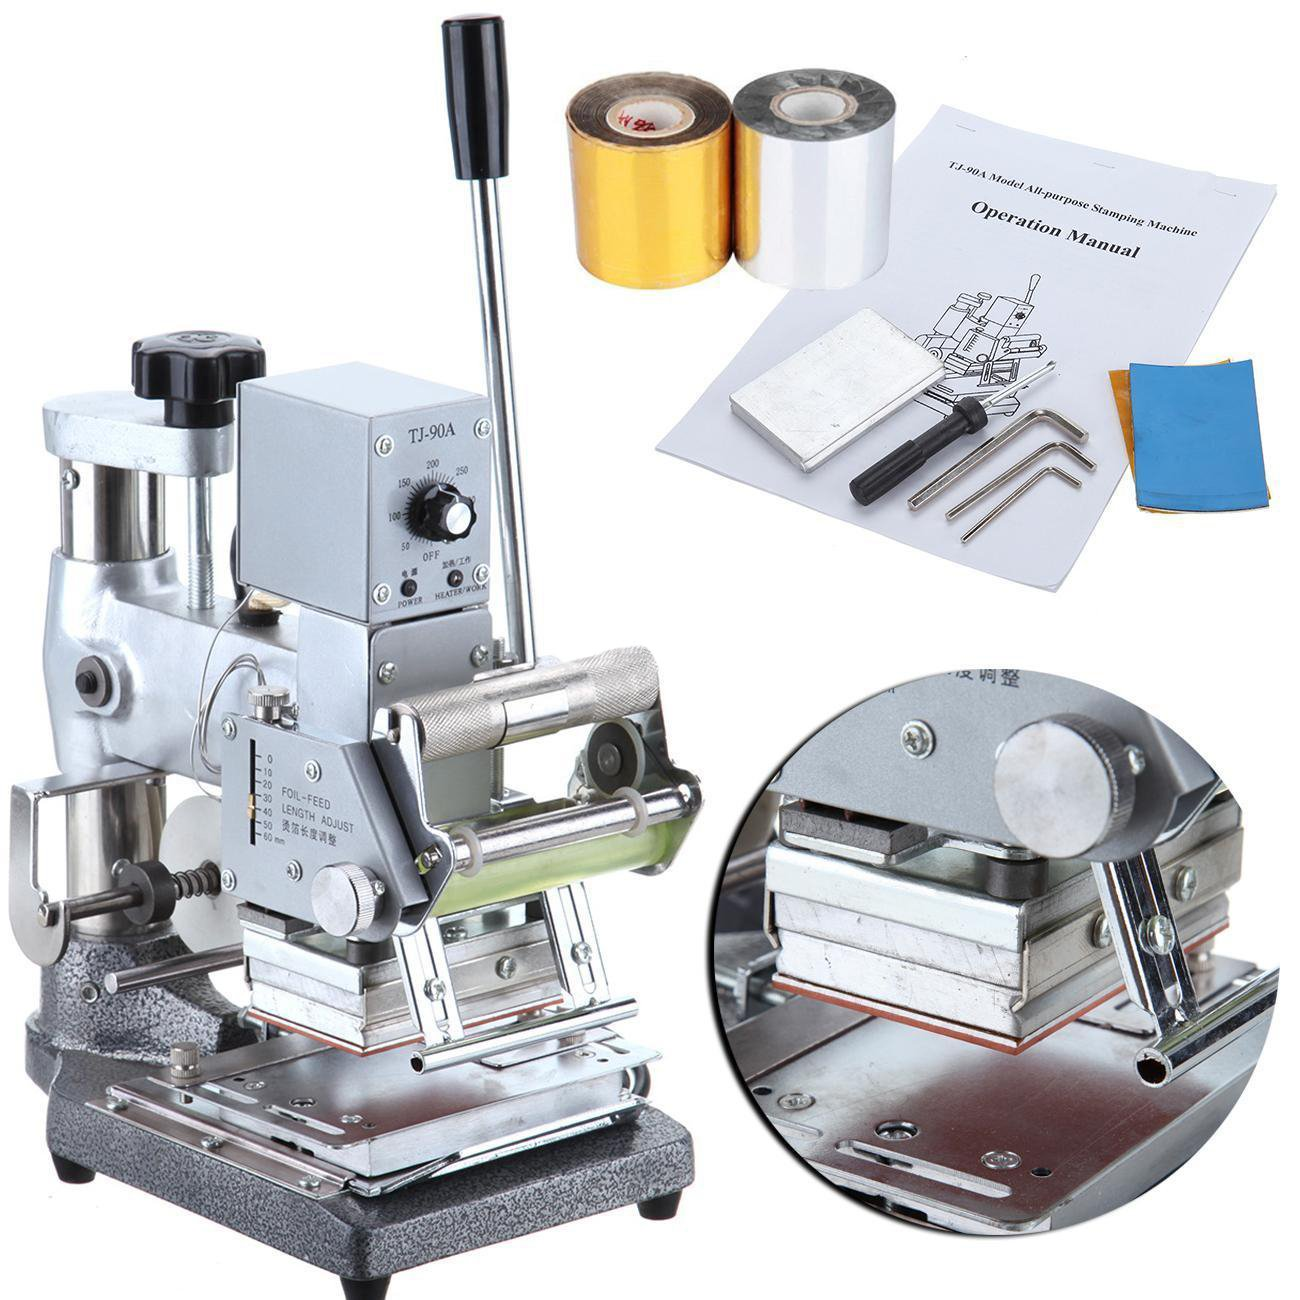 PanelTech Manual Stainless Steel Tipper stamper PVC Card Album Hot Foil Stamping Machine